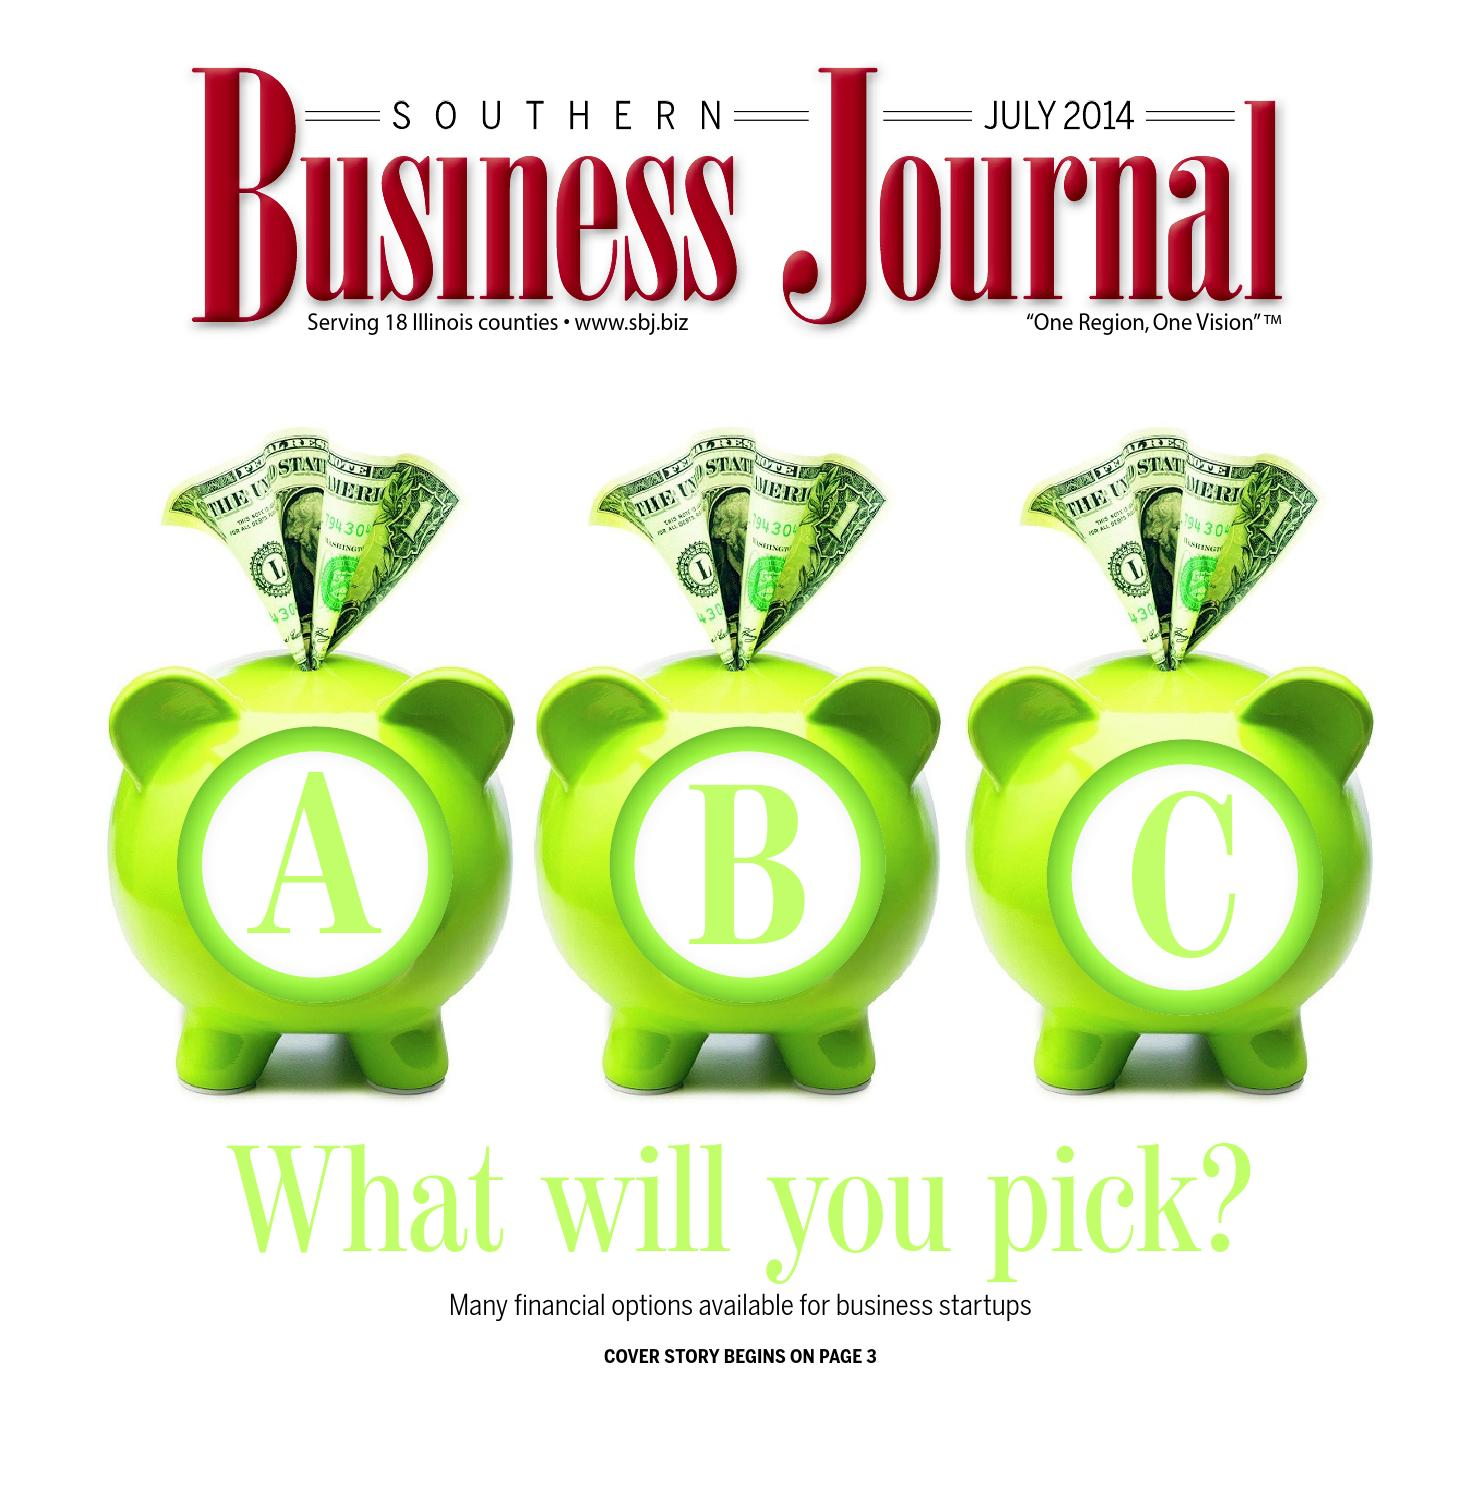 42add3d71d Southern Business Journal by The Southern Illinoisan - issuu